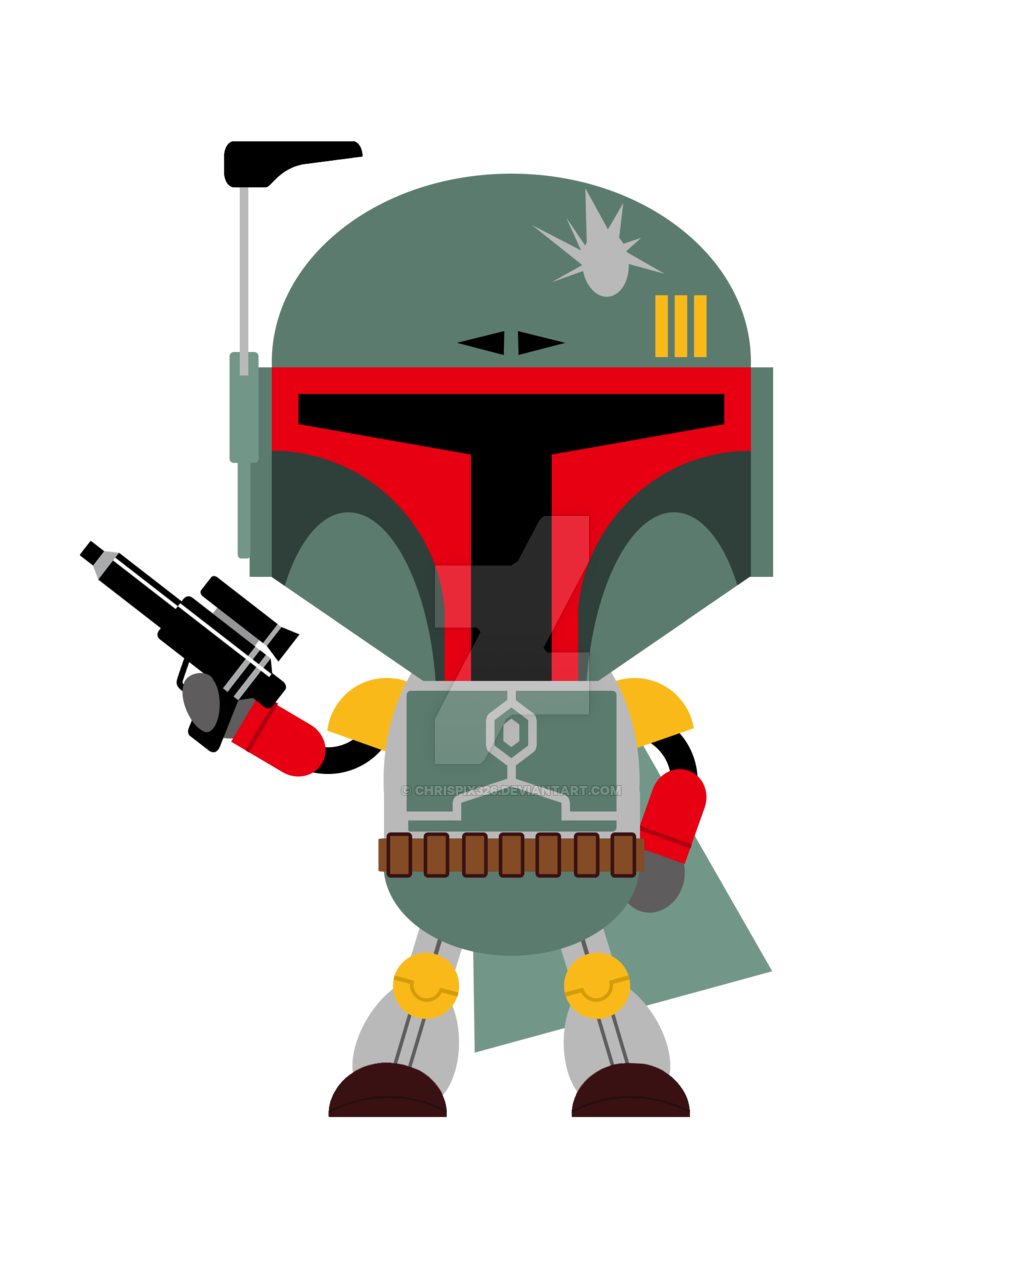 Bb at getdrawings com. Wars clipart picture download